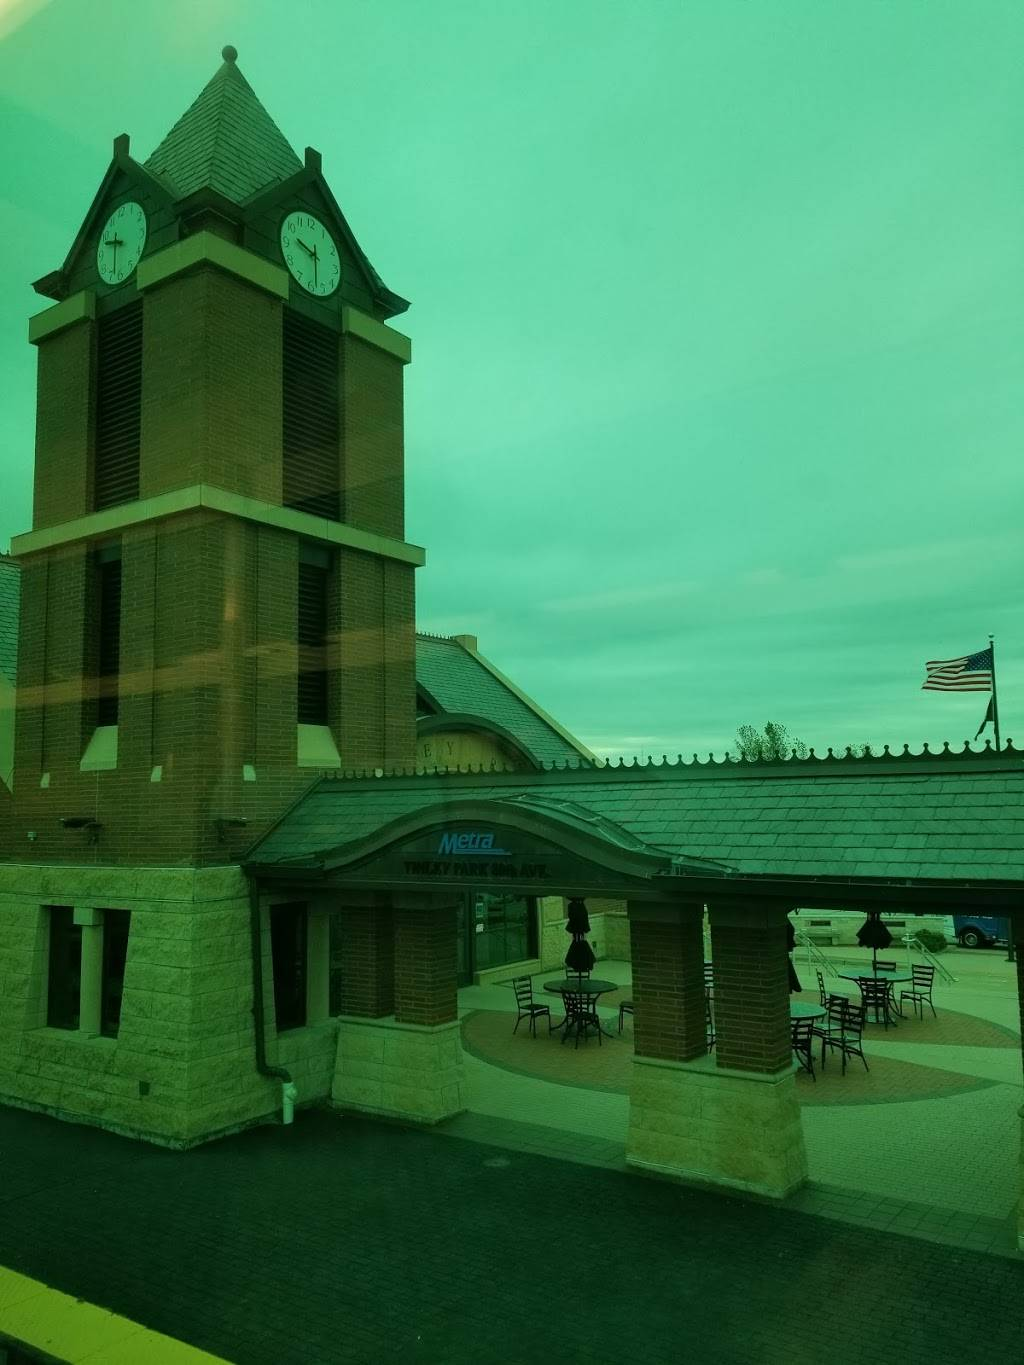 80th Ave Train Station | restaurant | 18001 80th Ave, Tinley Park, IL 60477, USA | 7084445000 OR +1 708-444-5000